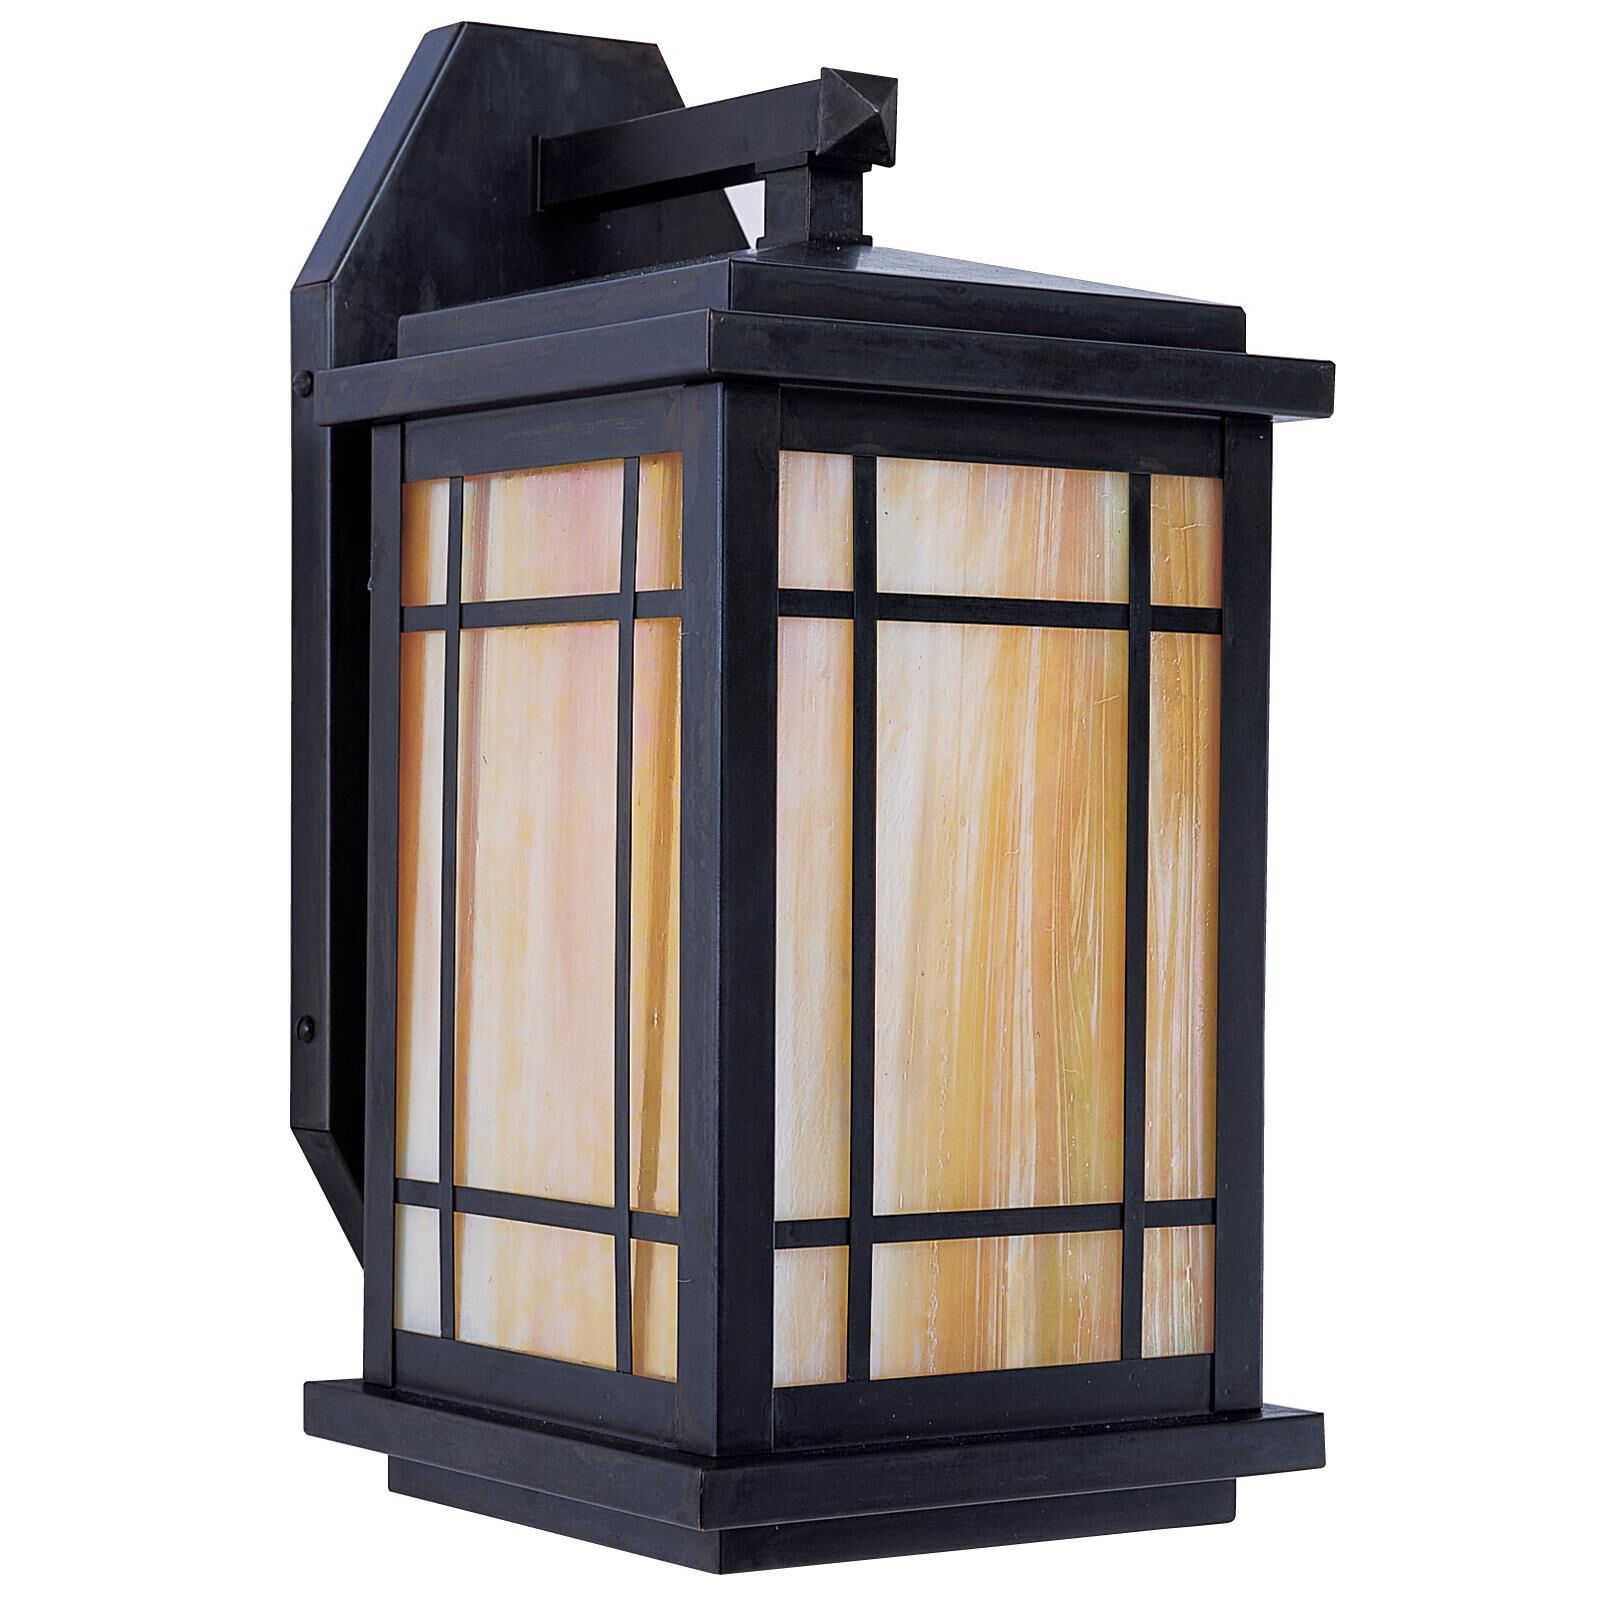 Arroyo_Craftsman_Avenue_16_Inch_Tall_1_Light_Outdoor_Wall_Light_Avenue__AVB8GWBZ__CraftsmanMission_Outdoor_Wall_Light